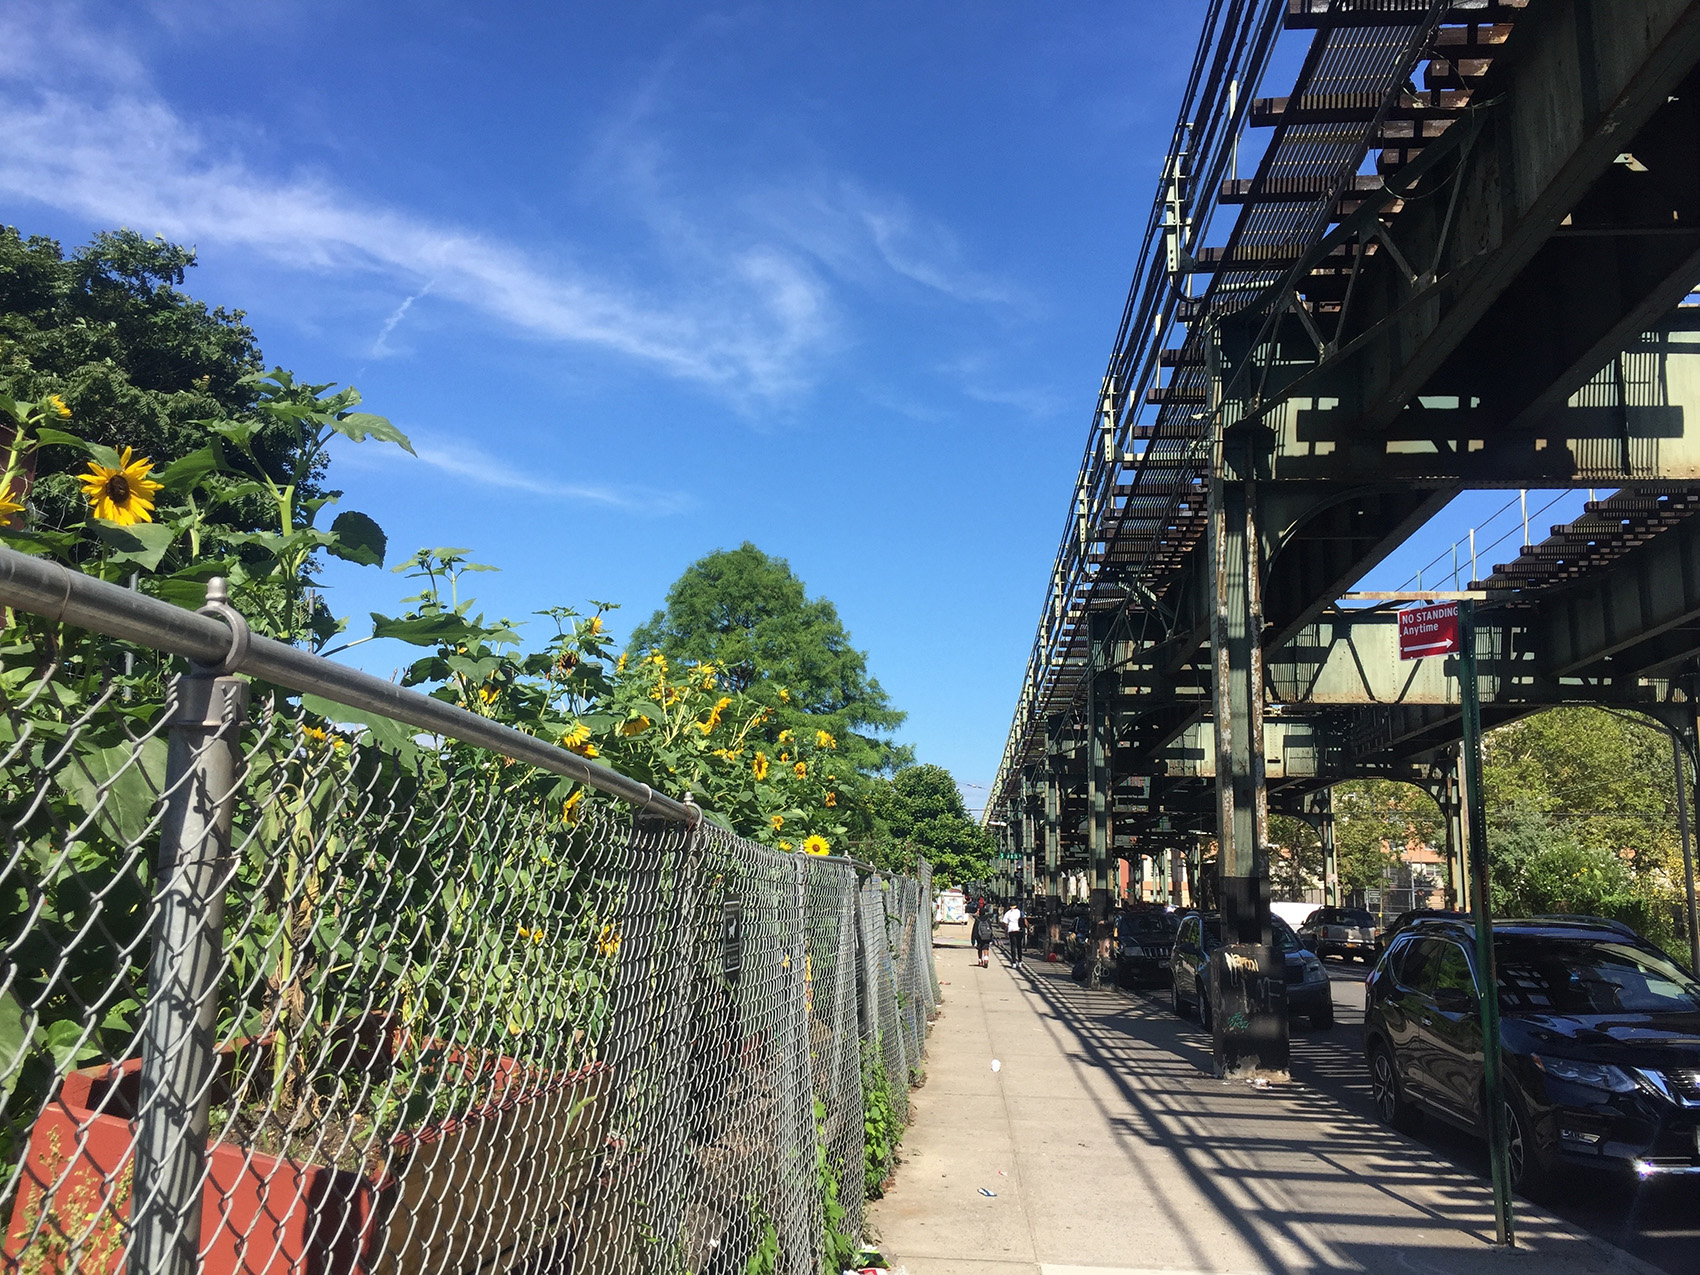 vegetable garden behind chain-link fence alongside parked cars and elevated train tracks